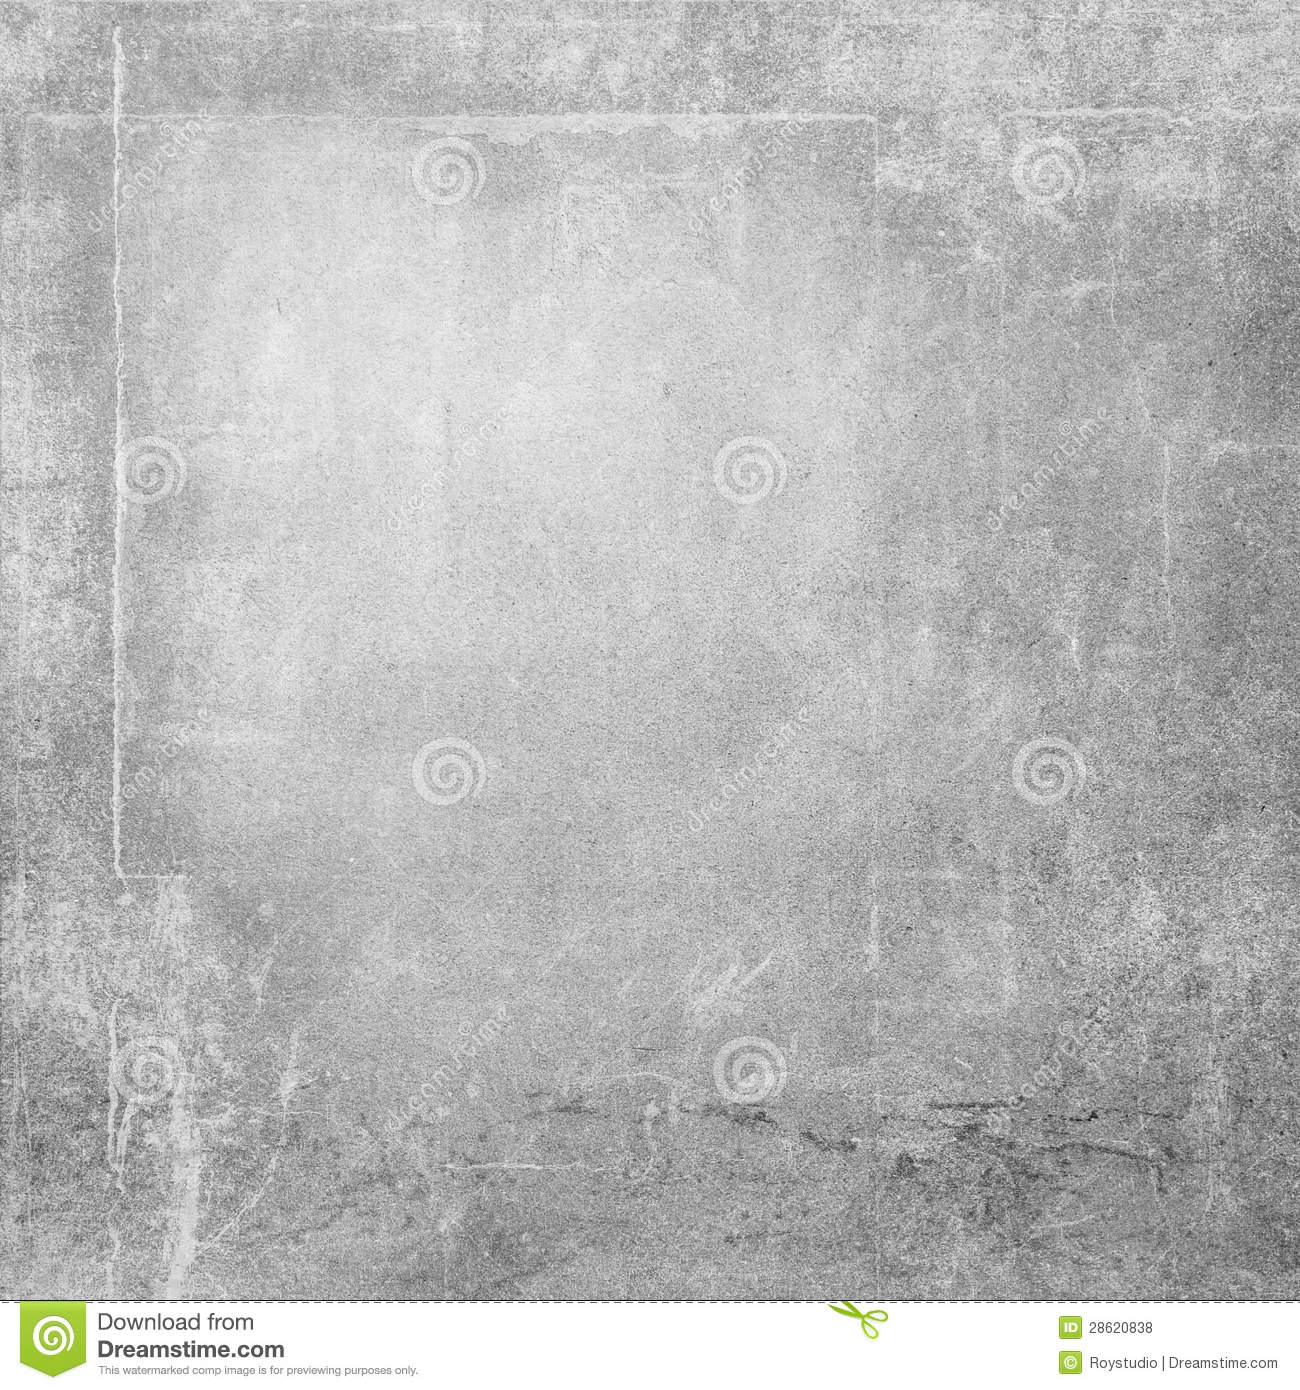 Grey Wall Texture Grunge Background Royalty Free Stock